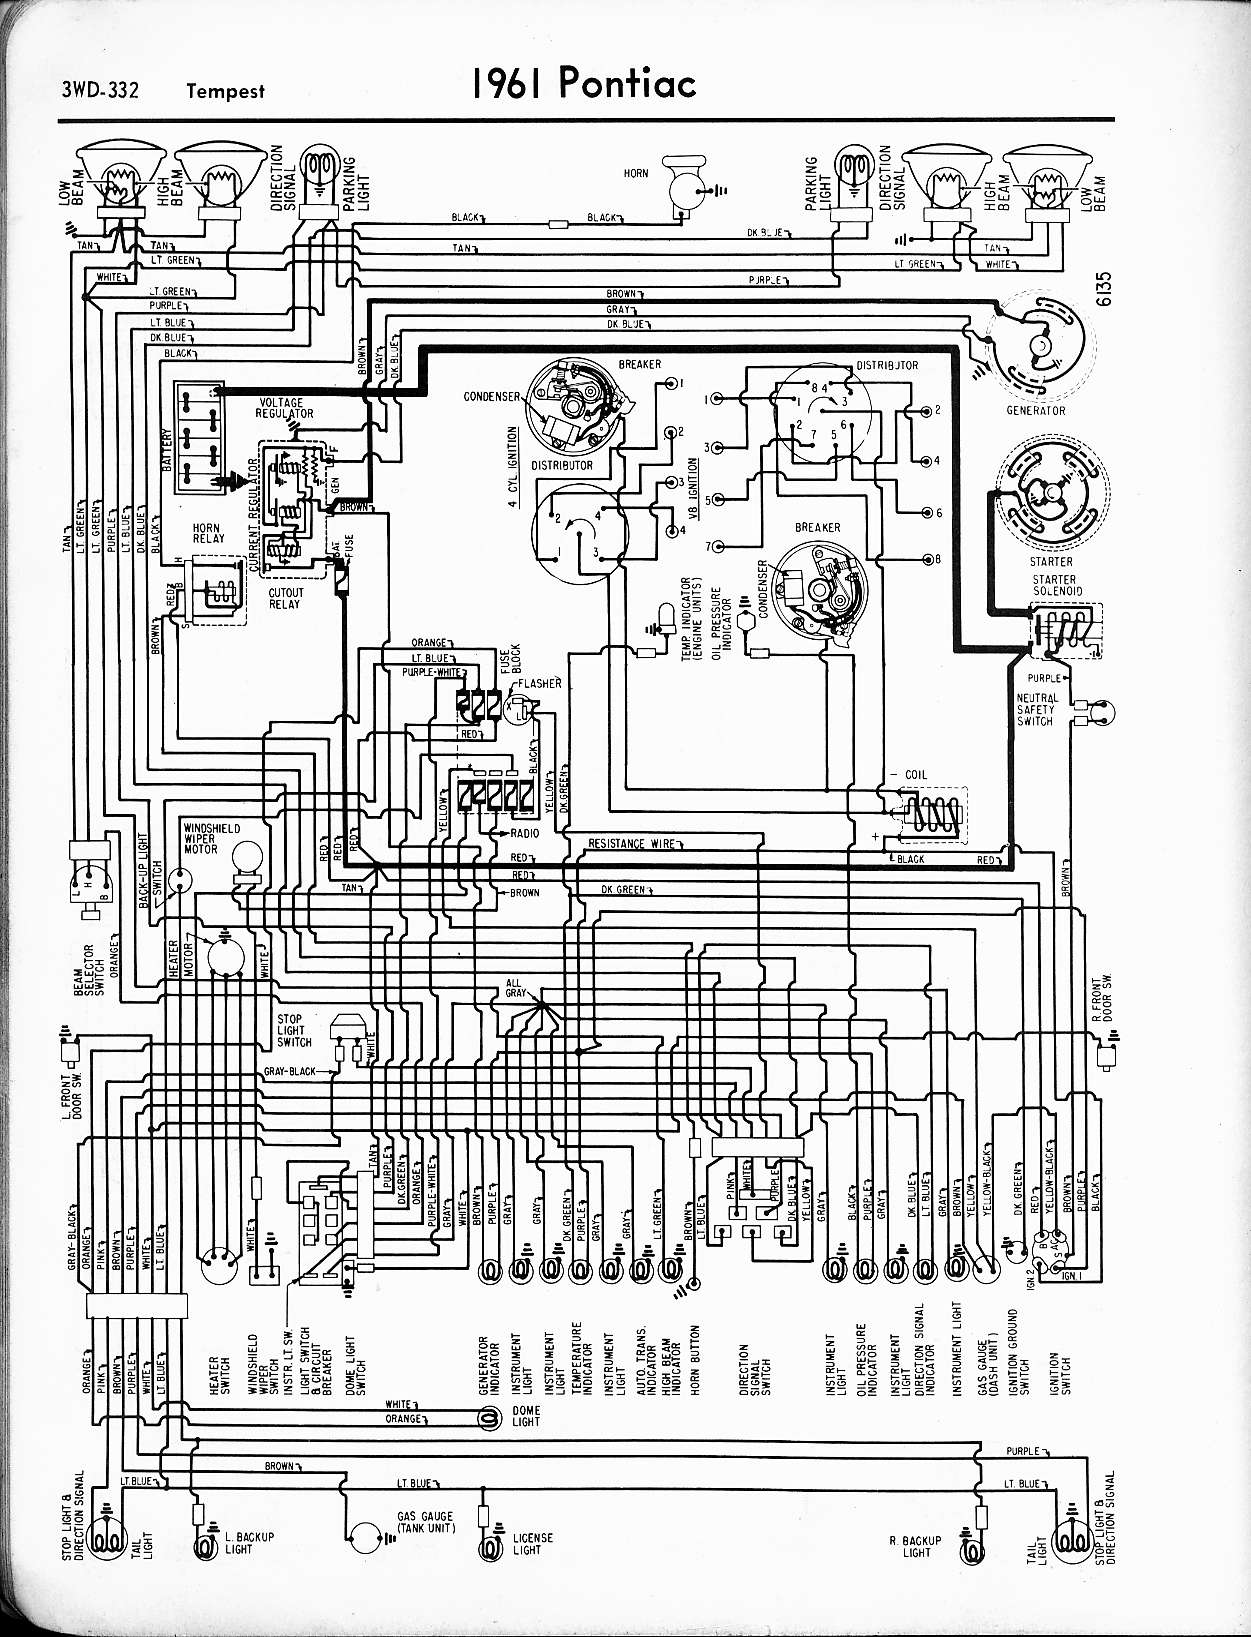 1990 Pontiac Grand Prix Wiring Diagram Worksheet And Chrysler New Yorker Ac Schematics Rh Mychampagnedaze Com 99 2001